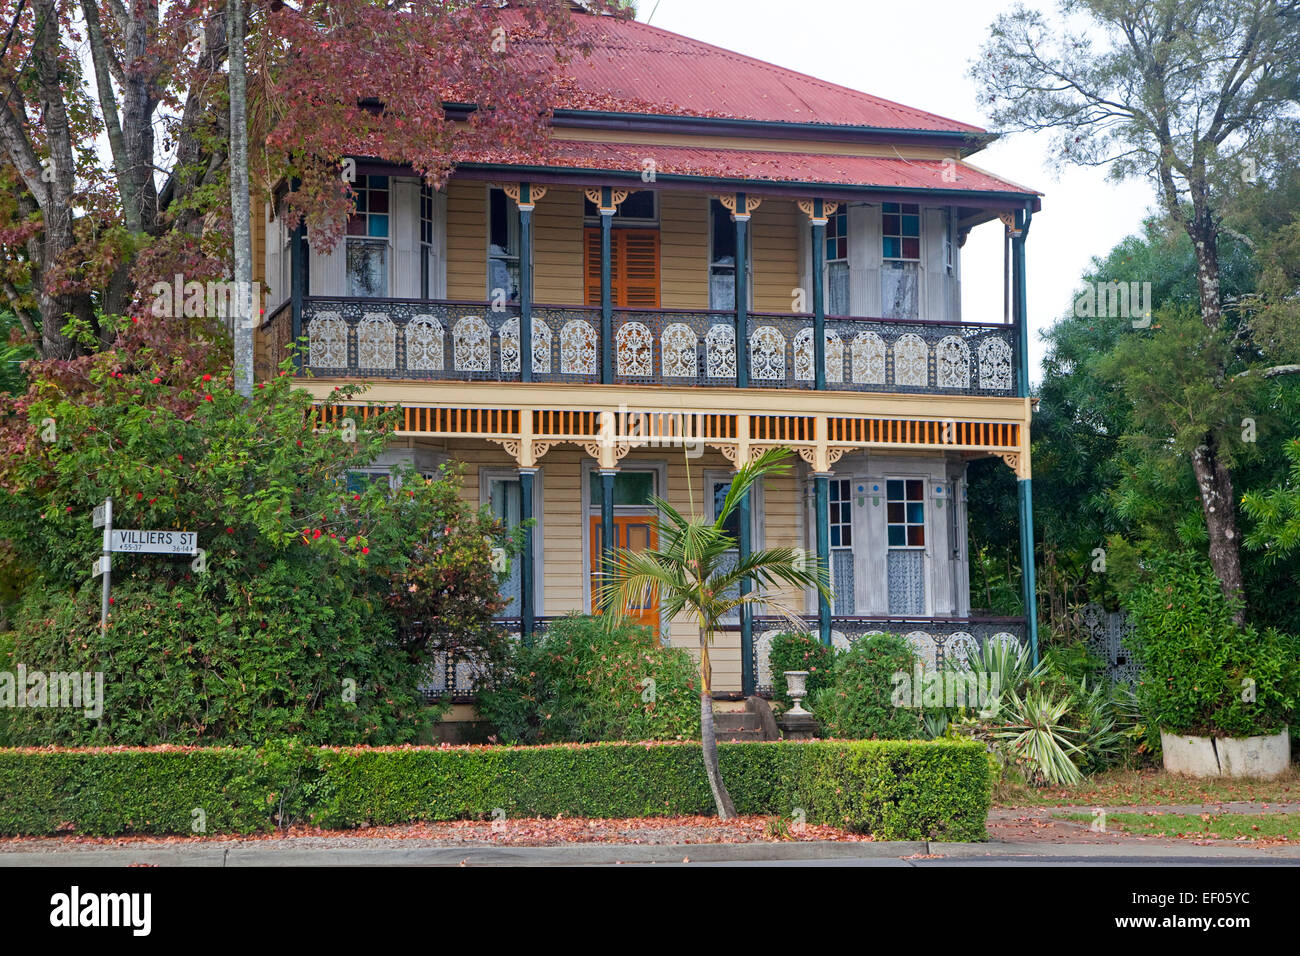 Colourful traditional British colonial house in Grafton, New South Wales, Australia - Stock Image